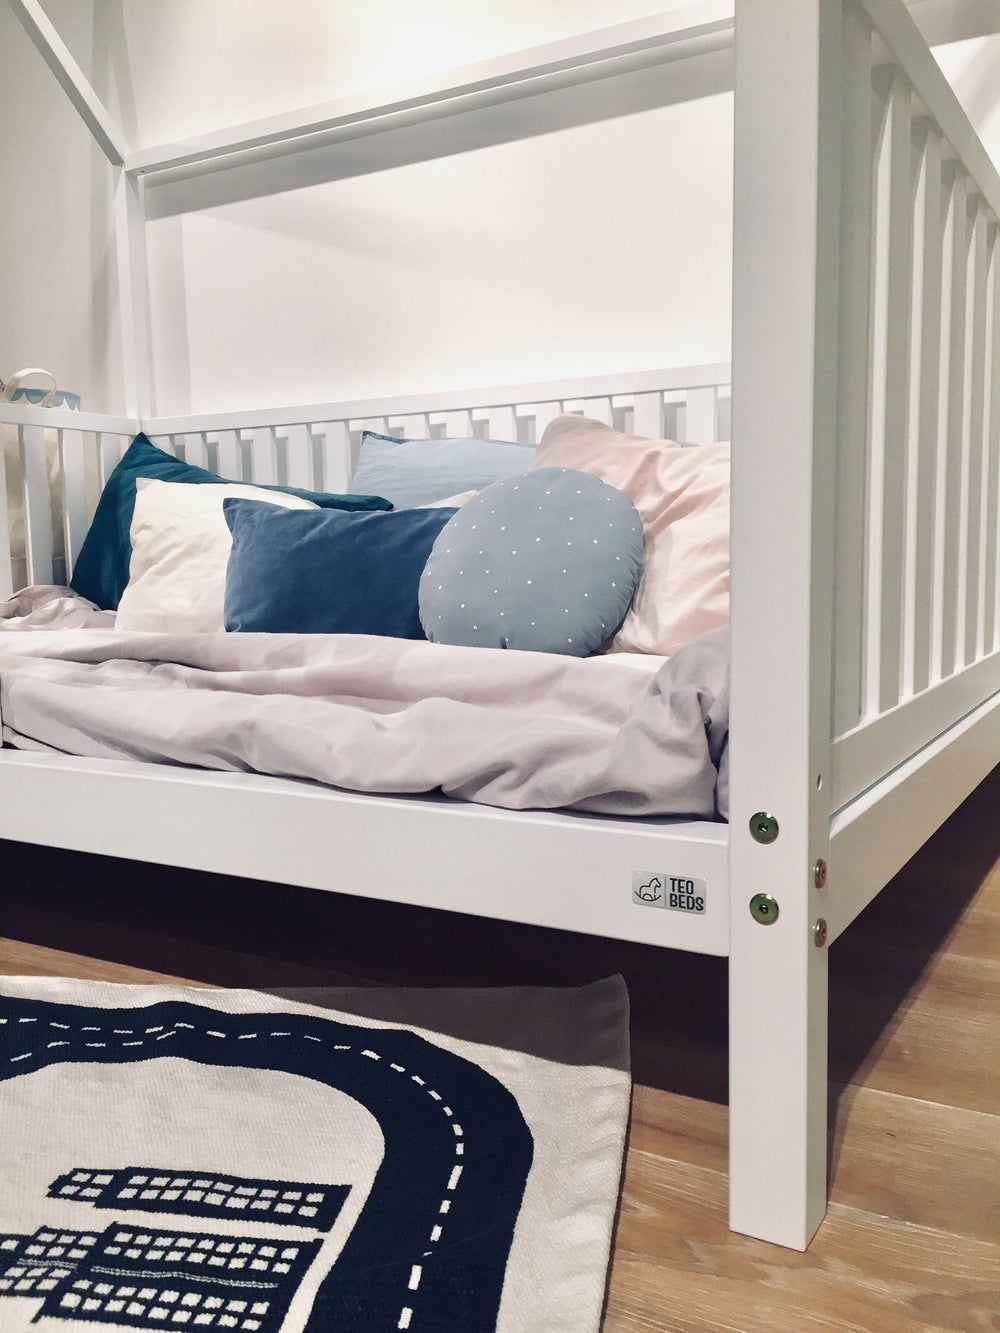 """QUEEN Size Toddler bed 60x80"""" with bed rails Teo Beds FREE SHIPPING"""